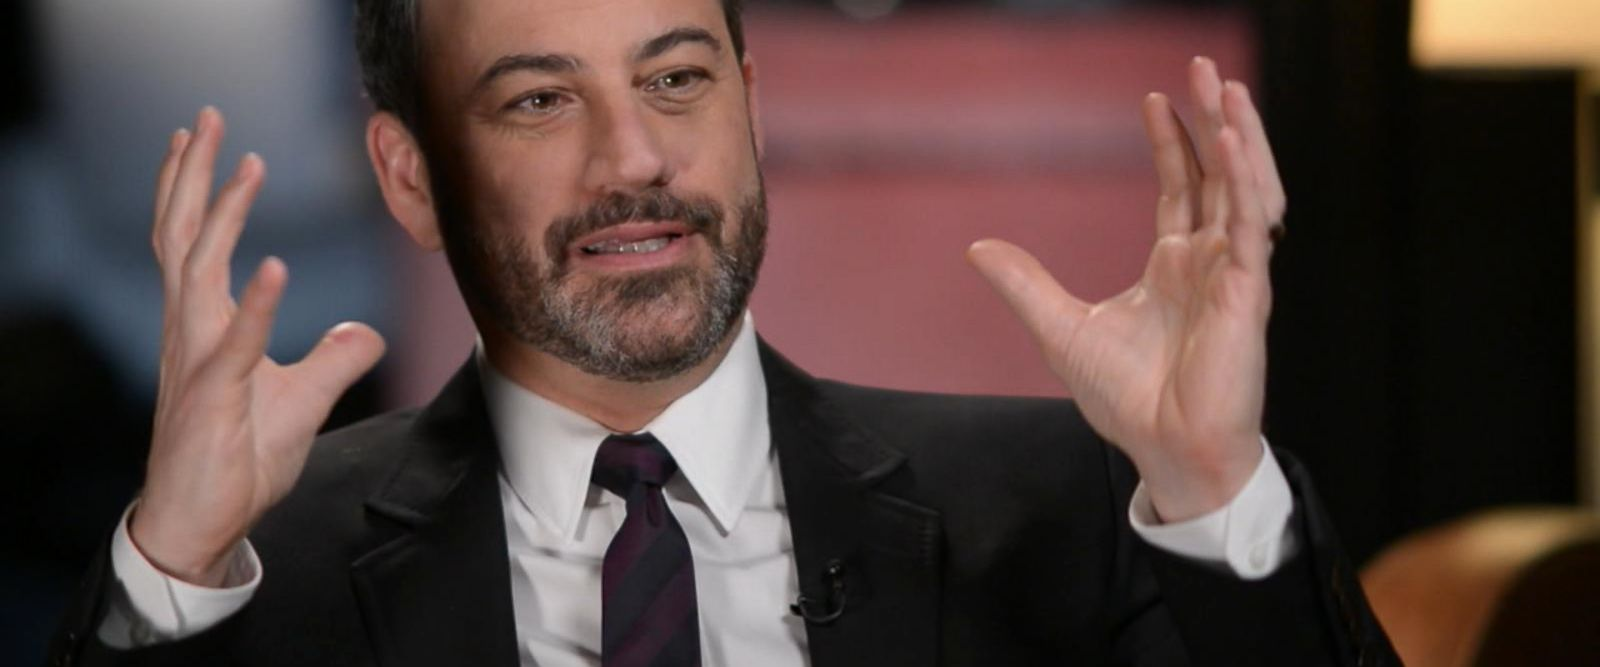 VIDEO: Behind the scenes with 1st-time Oscars host Jimmy Kimmel